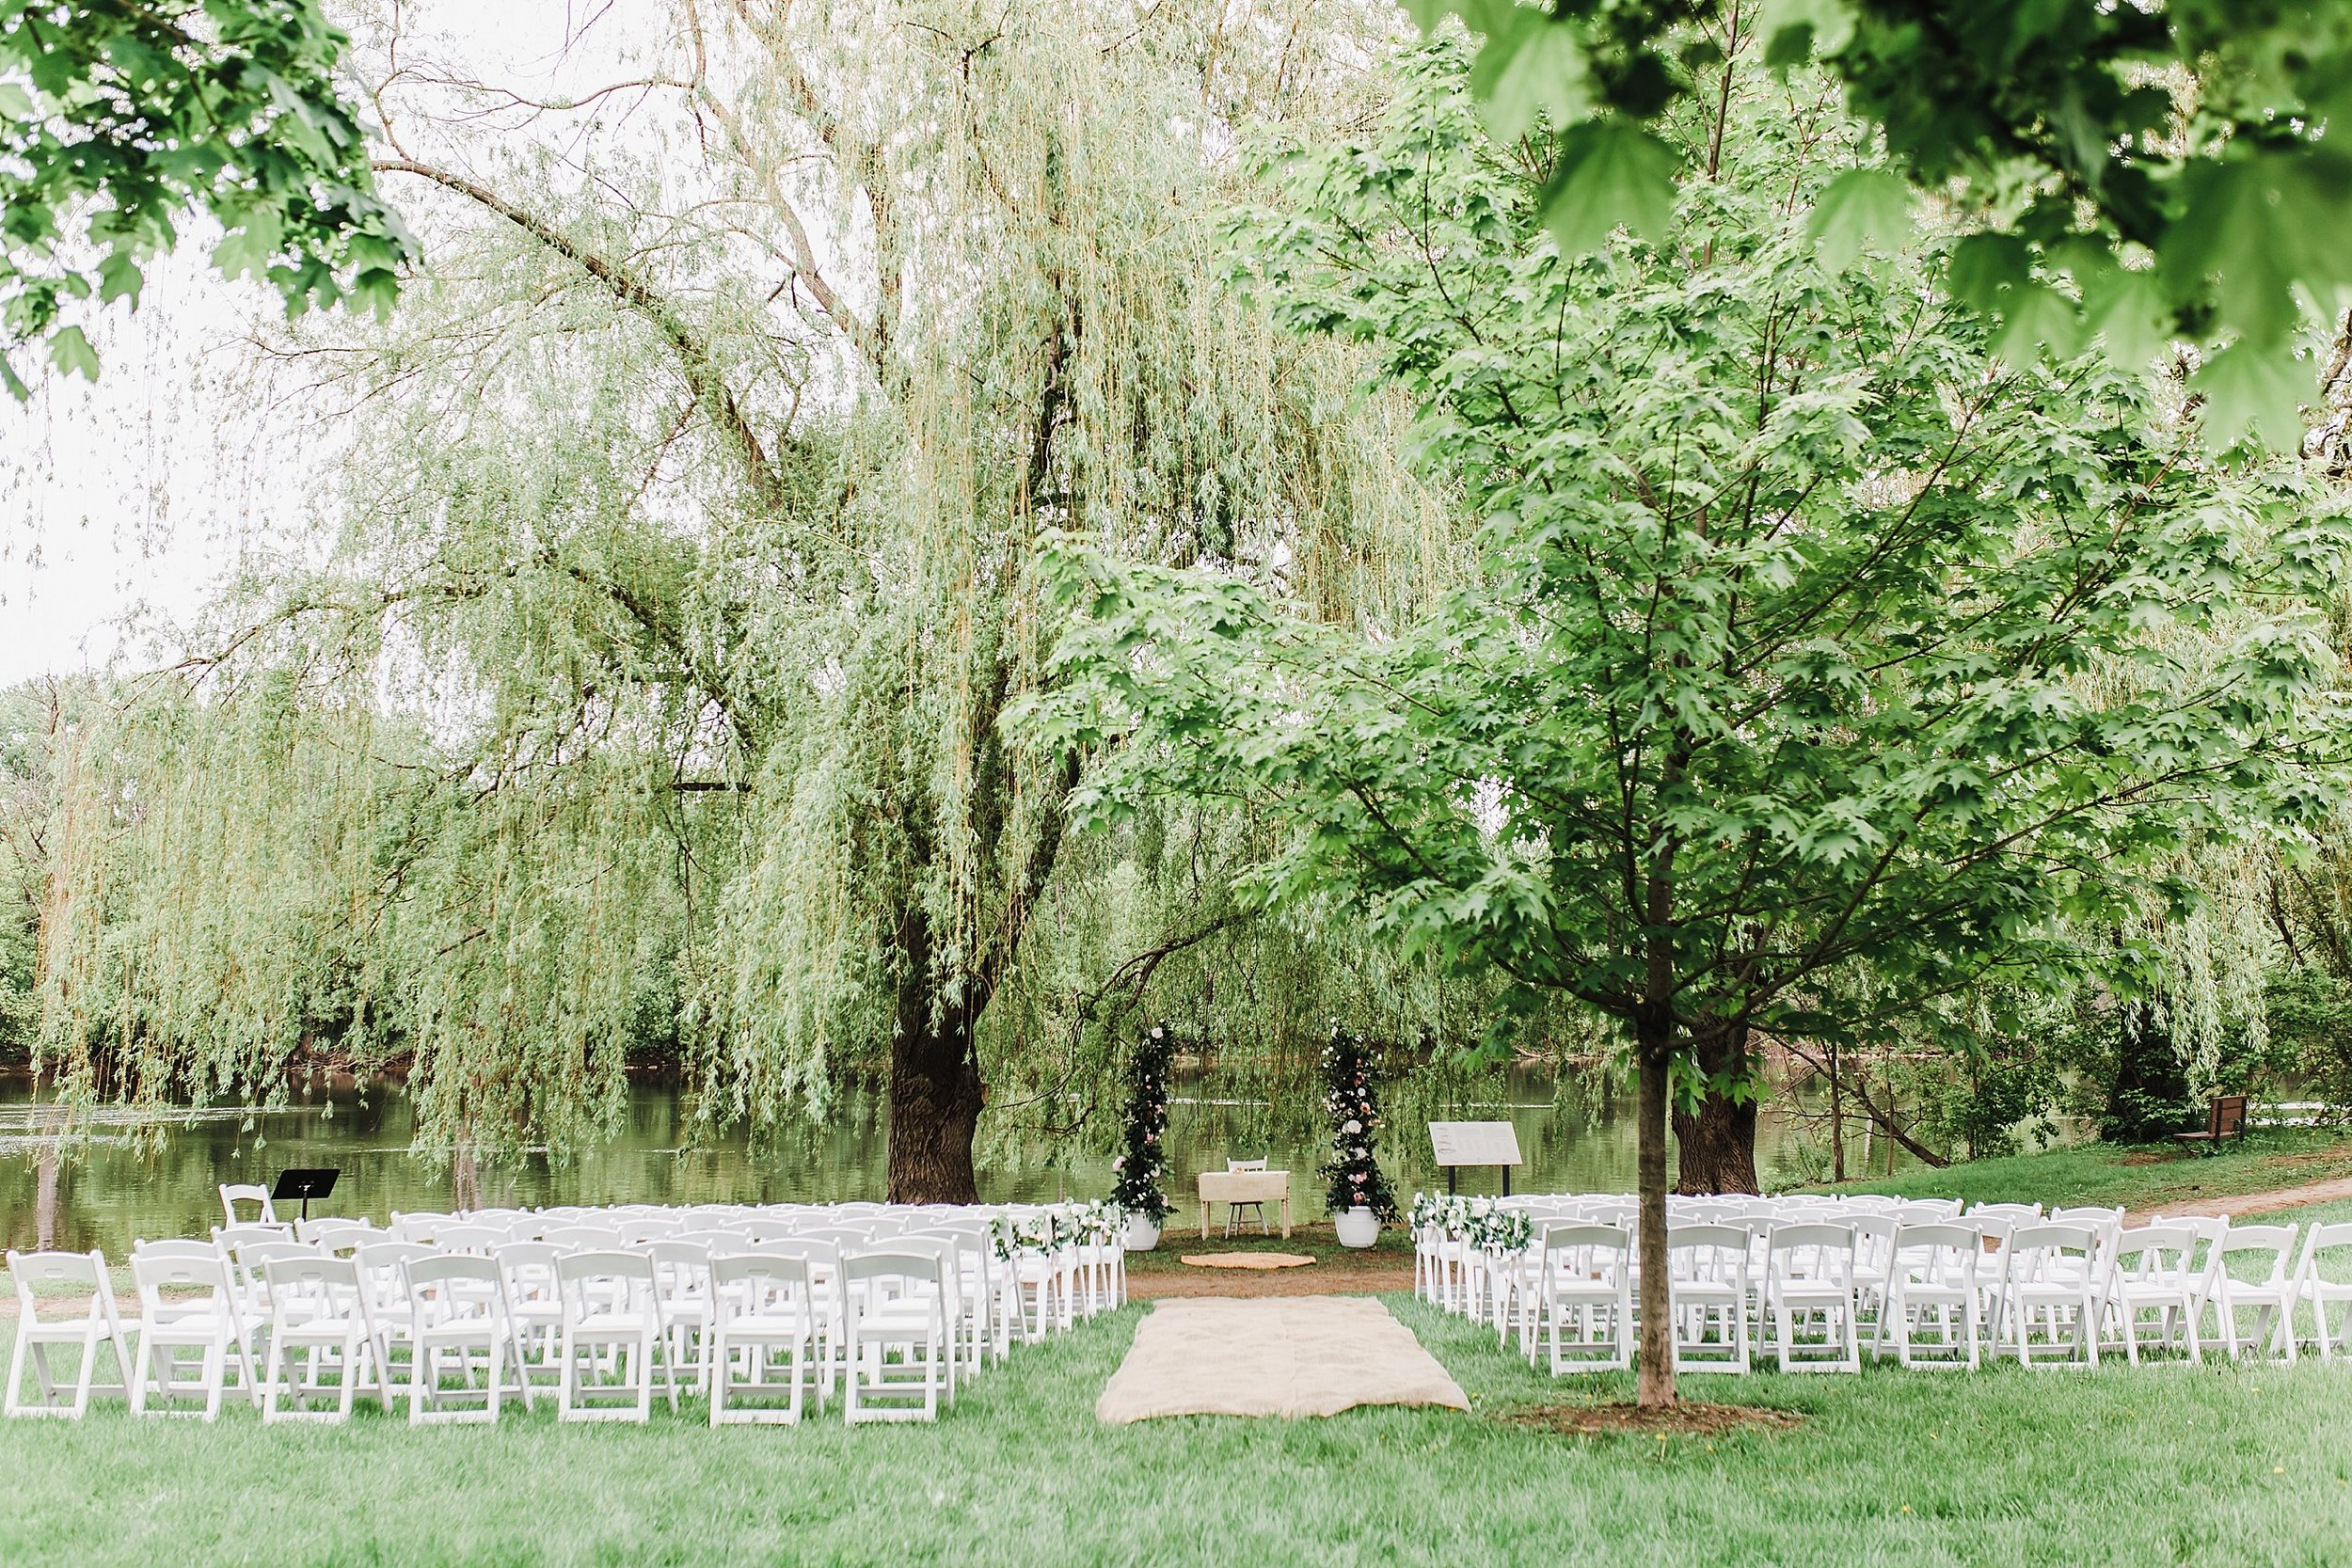 Their ceremony took place in the quiet Brantwood Park a few minutes drive away.